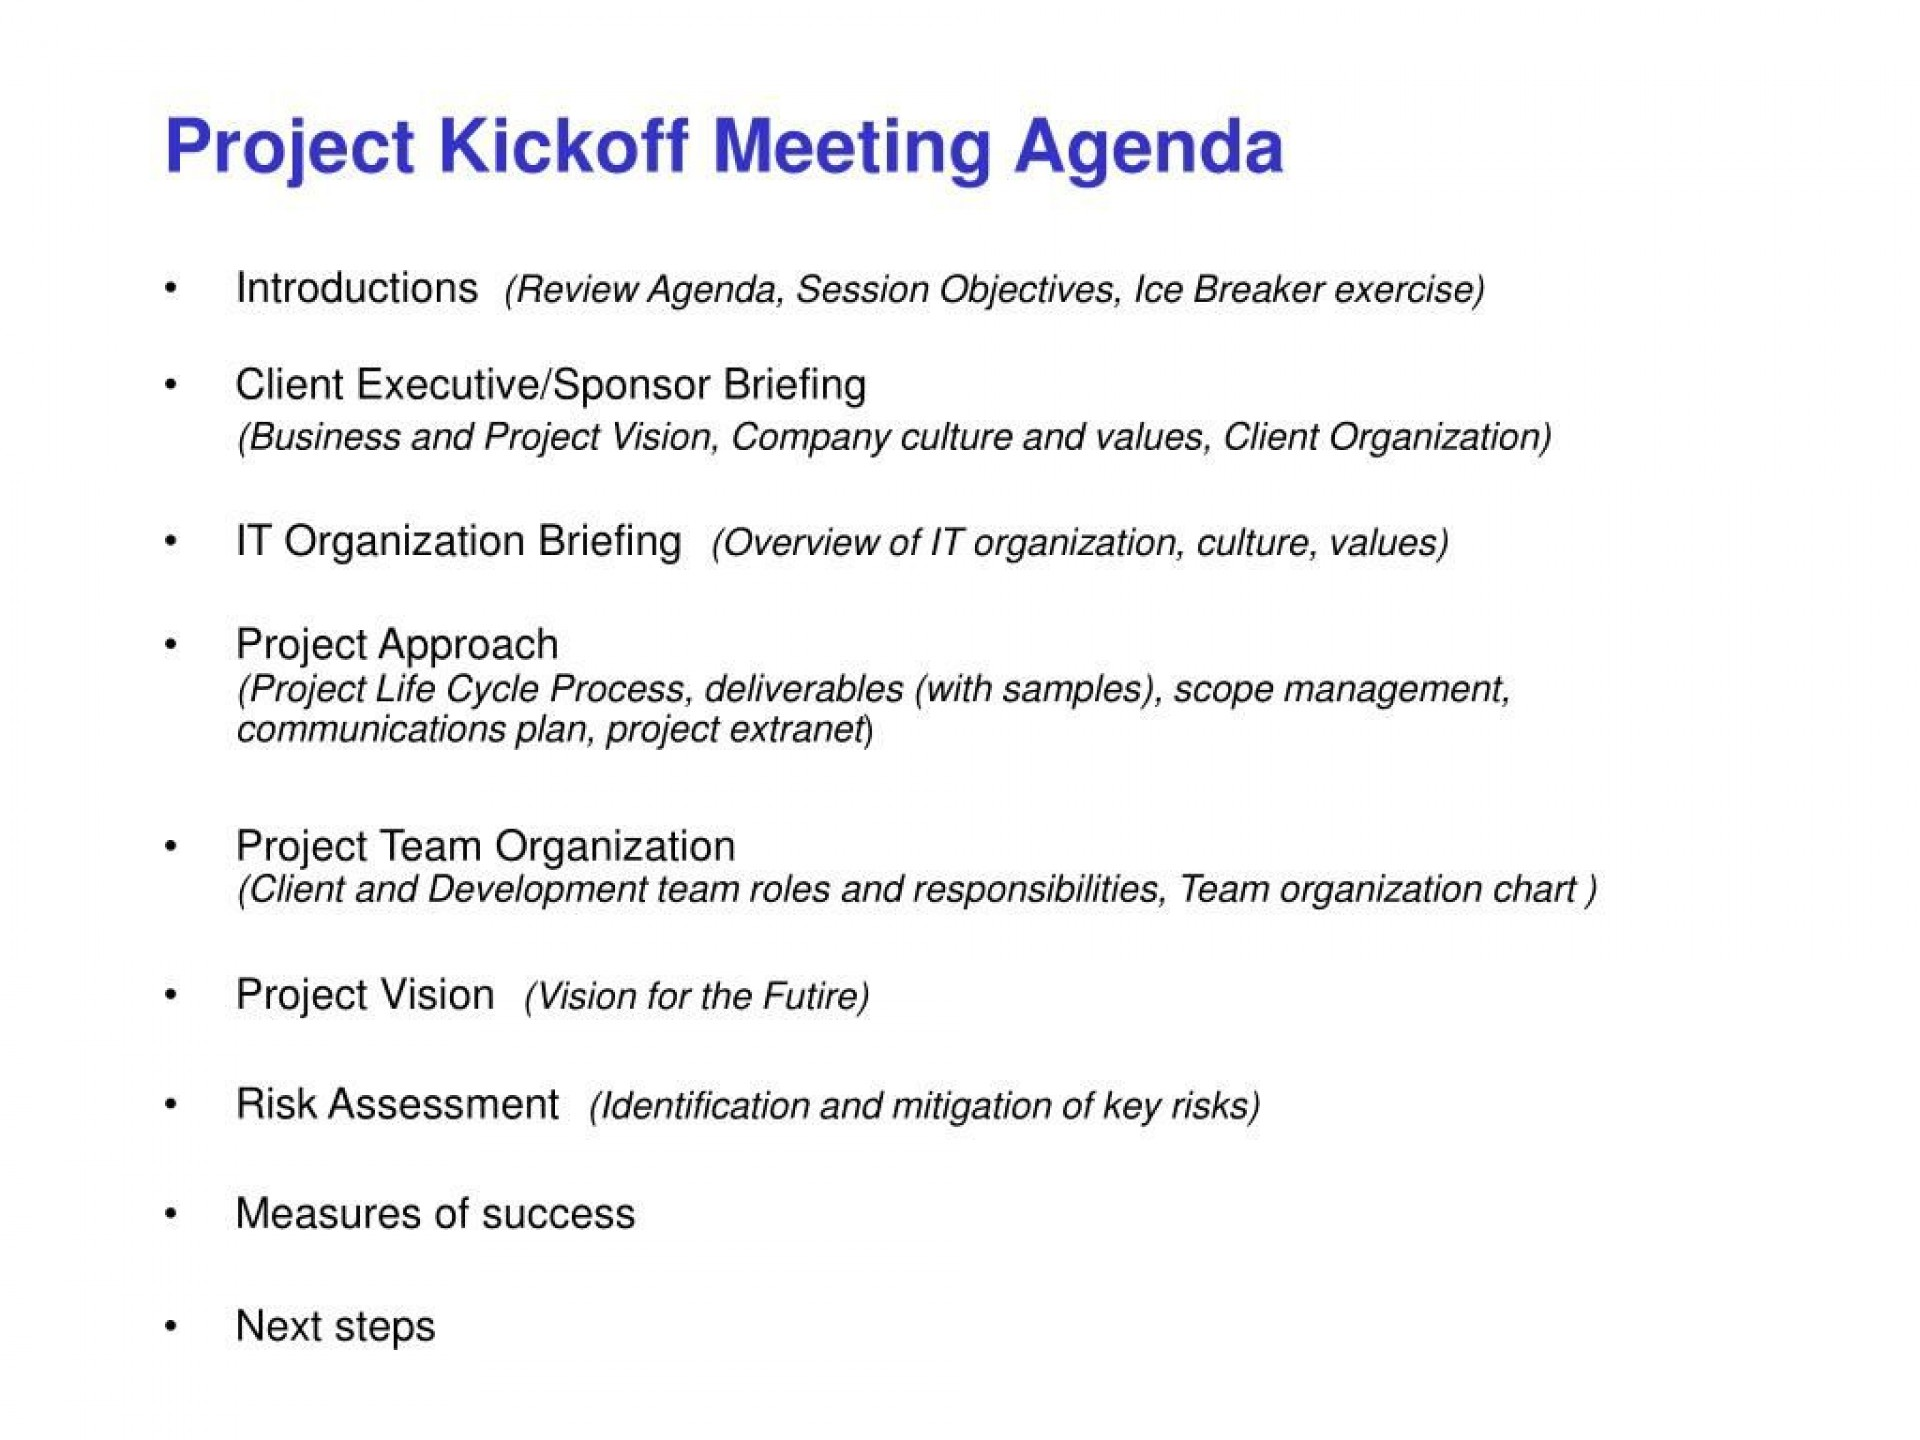 009 Unusual Project Kickoff Meeting Agenda Example Idea  Management Template1920